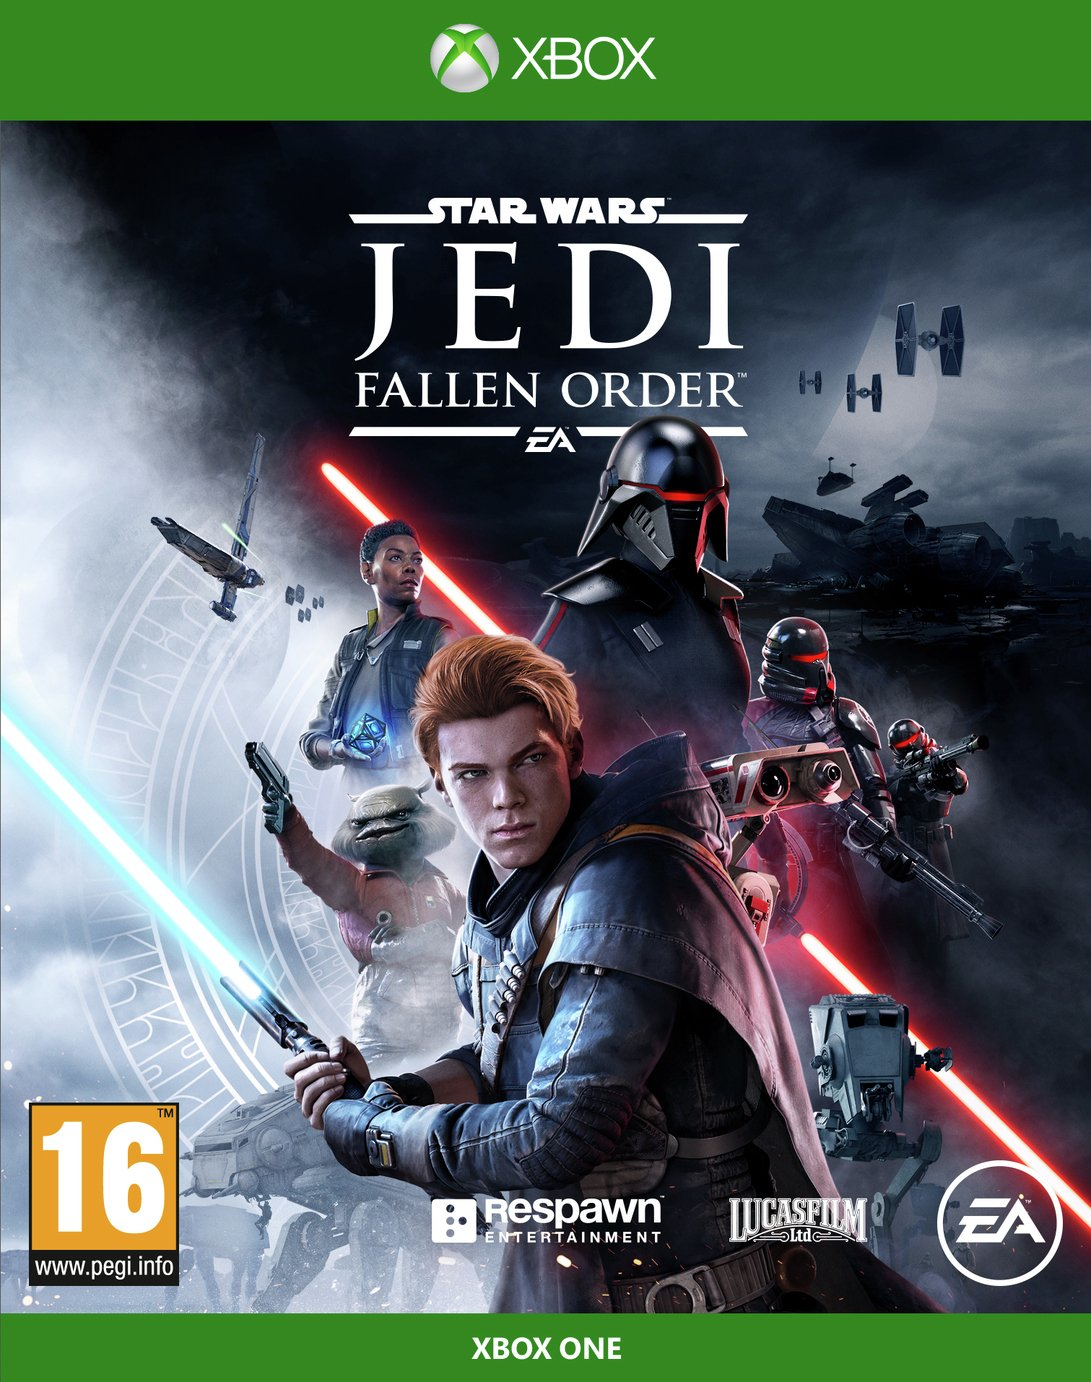 Star Wars Jedi Fallen Order Xbox One Pre-Order Game from Star Wars